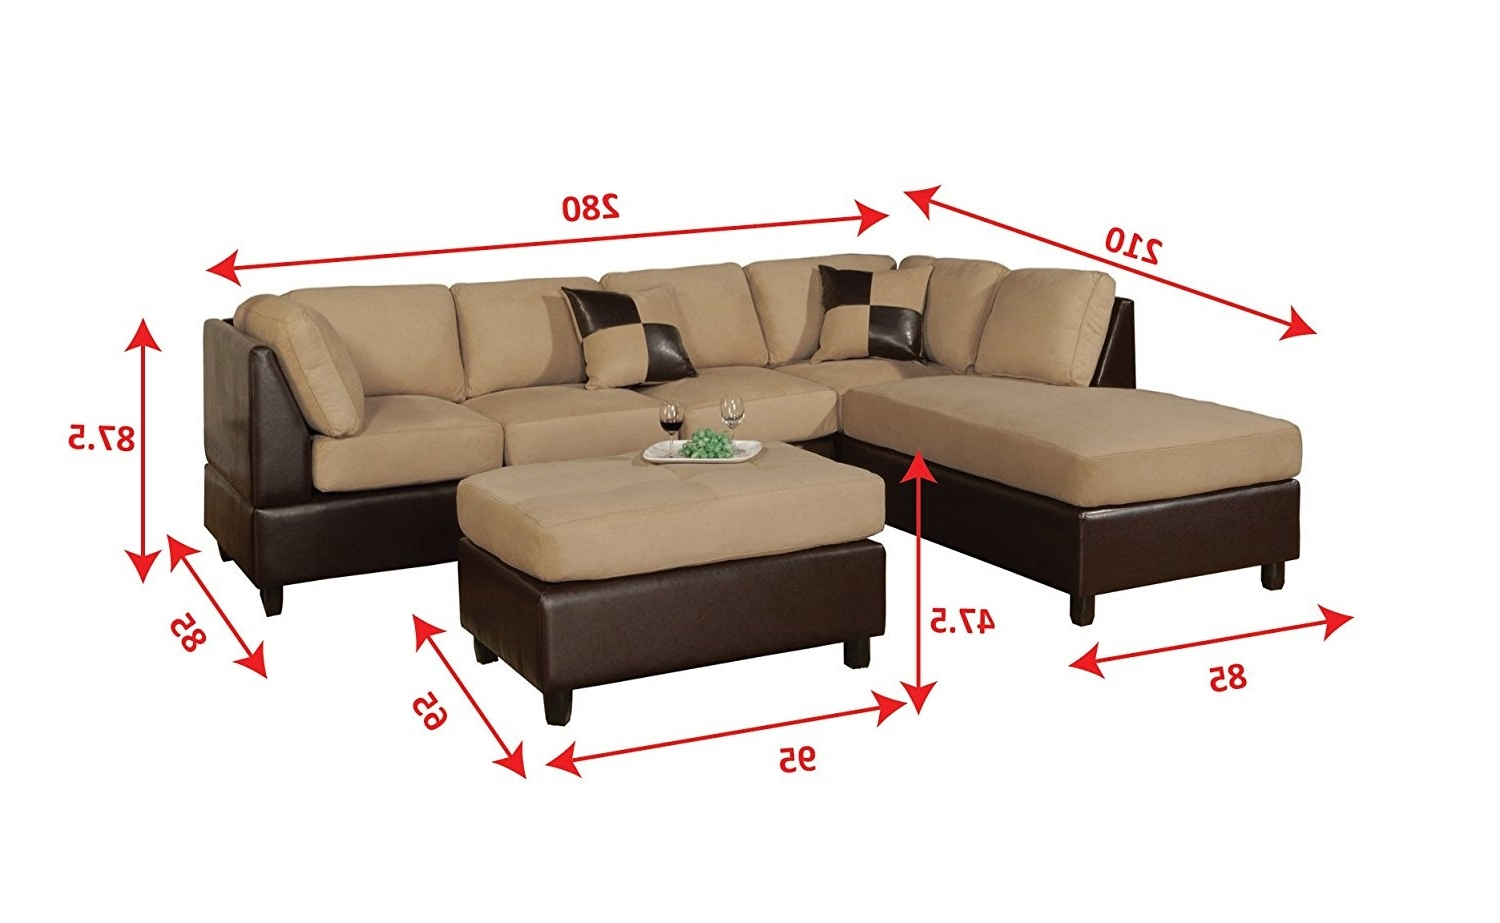 Amazon: Bobkona Hungtinton Microfiber/faux Leather 3 Piece With Regard To Widely Used Measurements Sectional Sofas (View 11 of 15)